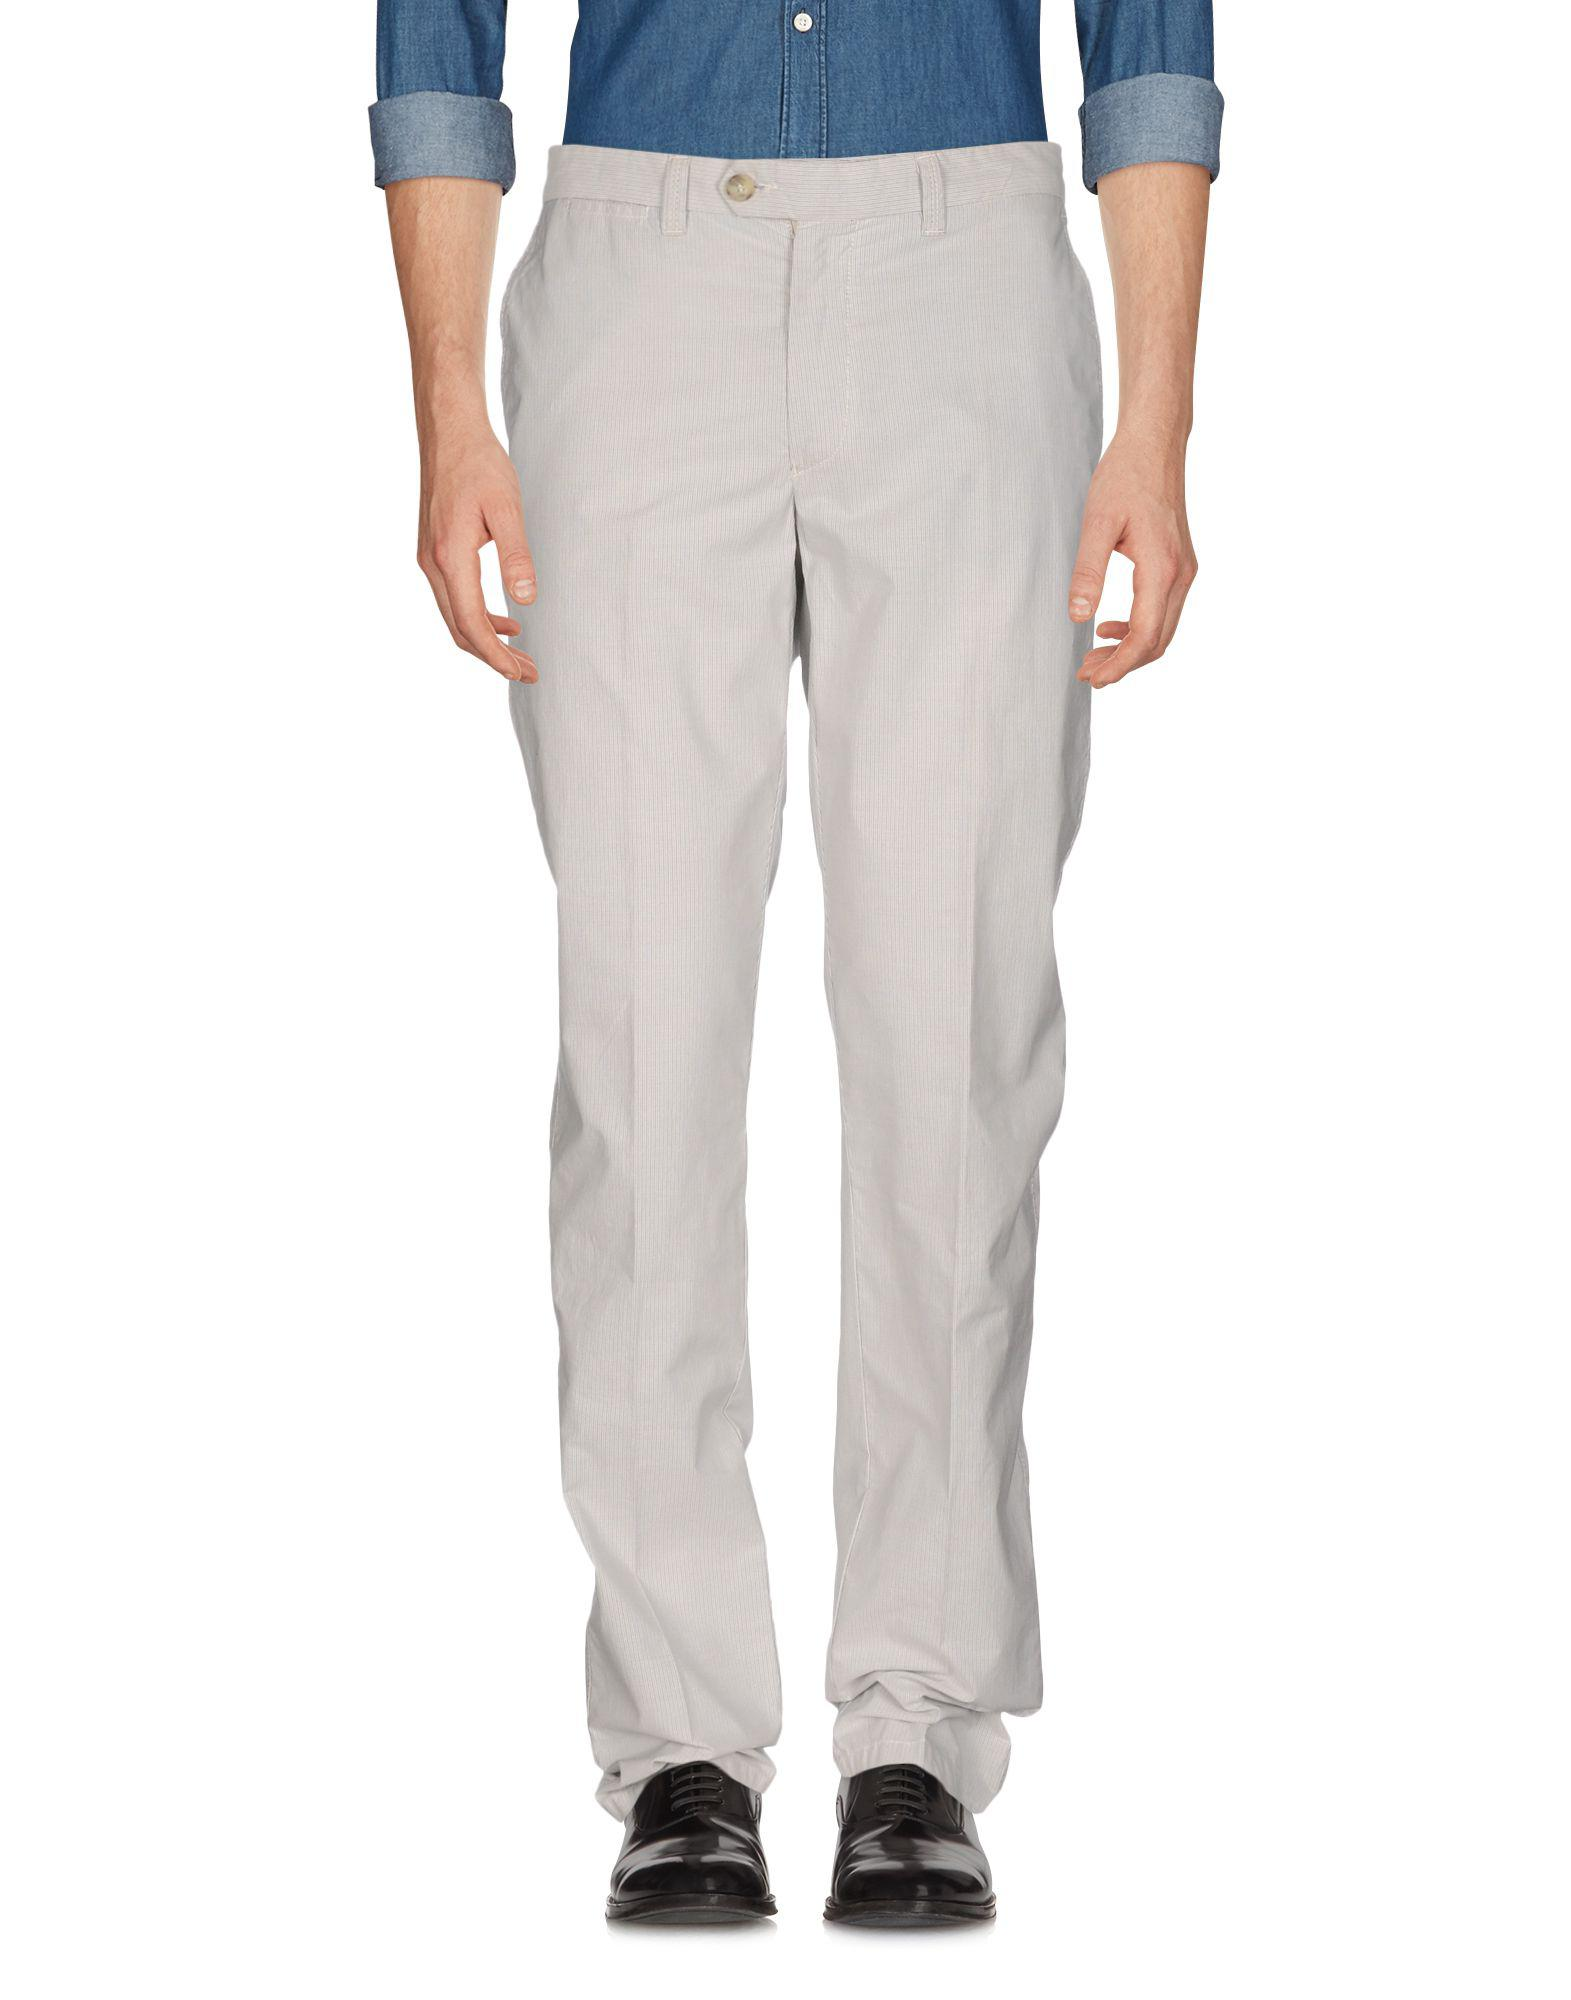 TROUSERS - Casual trousers Belfe t4I4f